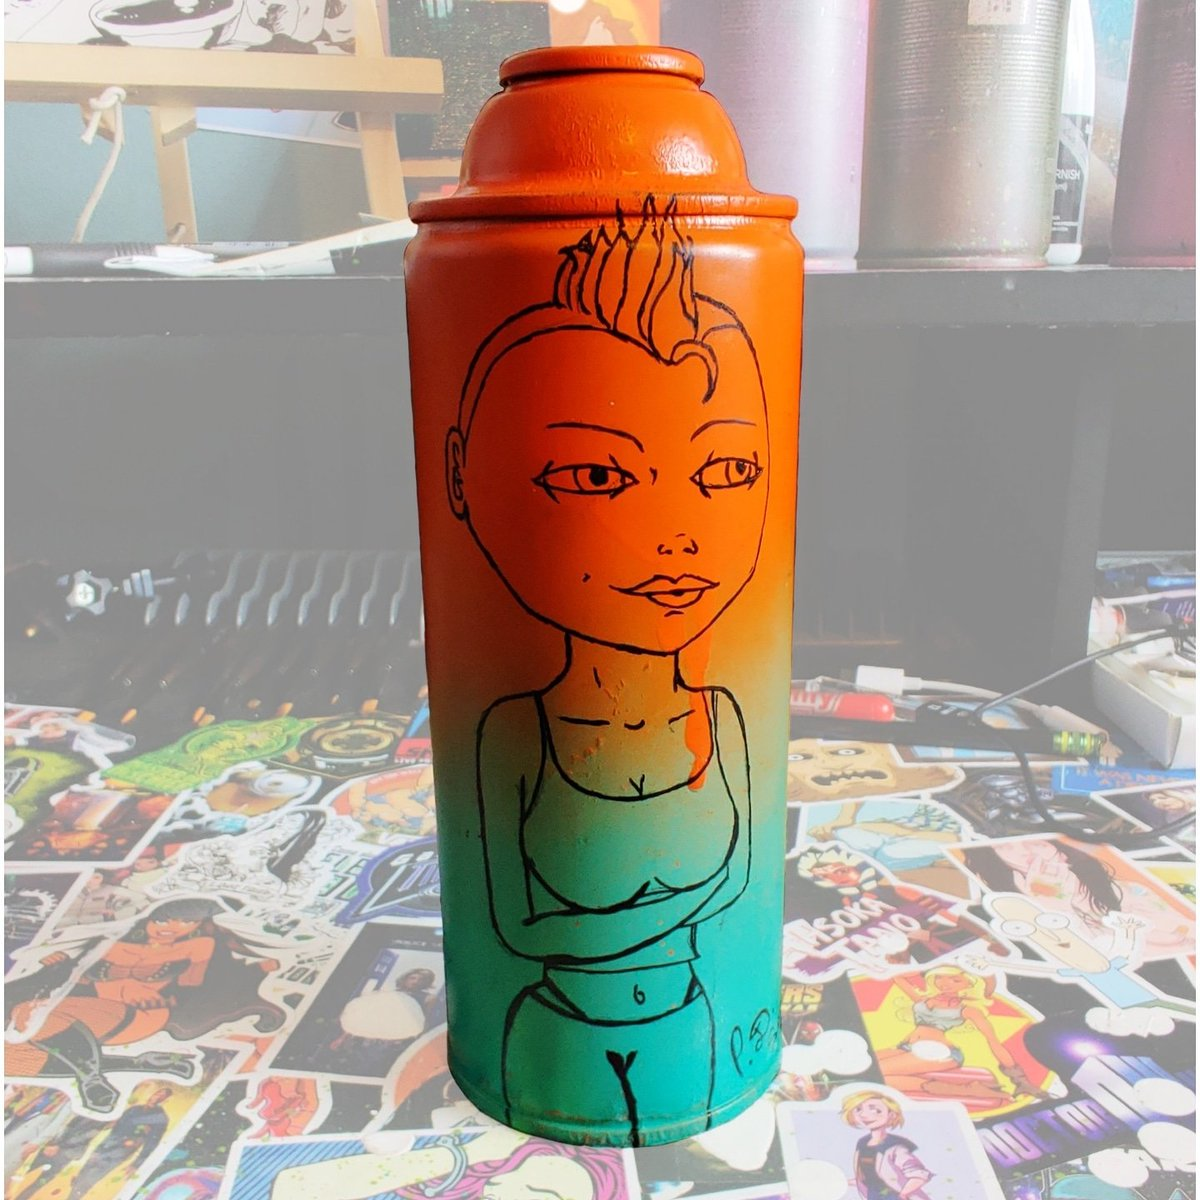 New spray can available at http://pdsean.com  You can watch me create it on my YouTube channel #pdsean #spraycanart #mgmArt #youtubevideos #youtube #artvideo #spraypaintartwork #artstudio #artcollection #artist #modernart #fineart #finishedpainting #newproject #newpainting pic.twitter.com/bfzqjymZ2c